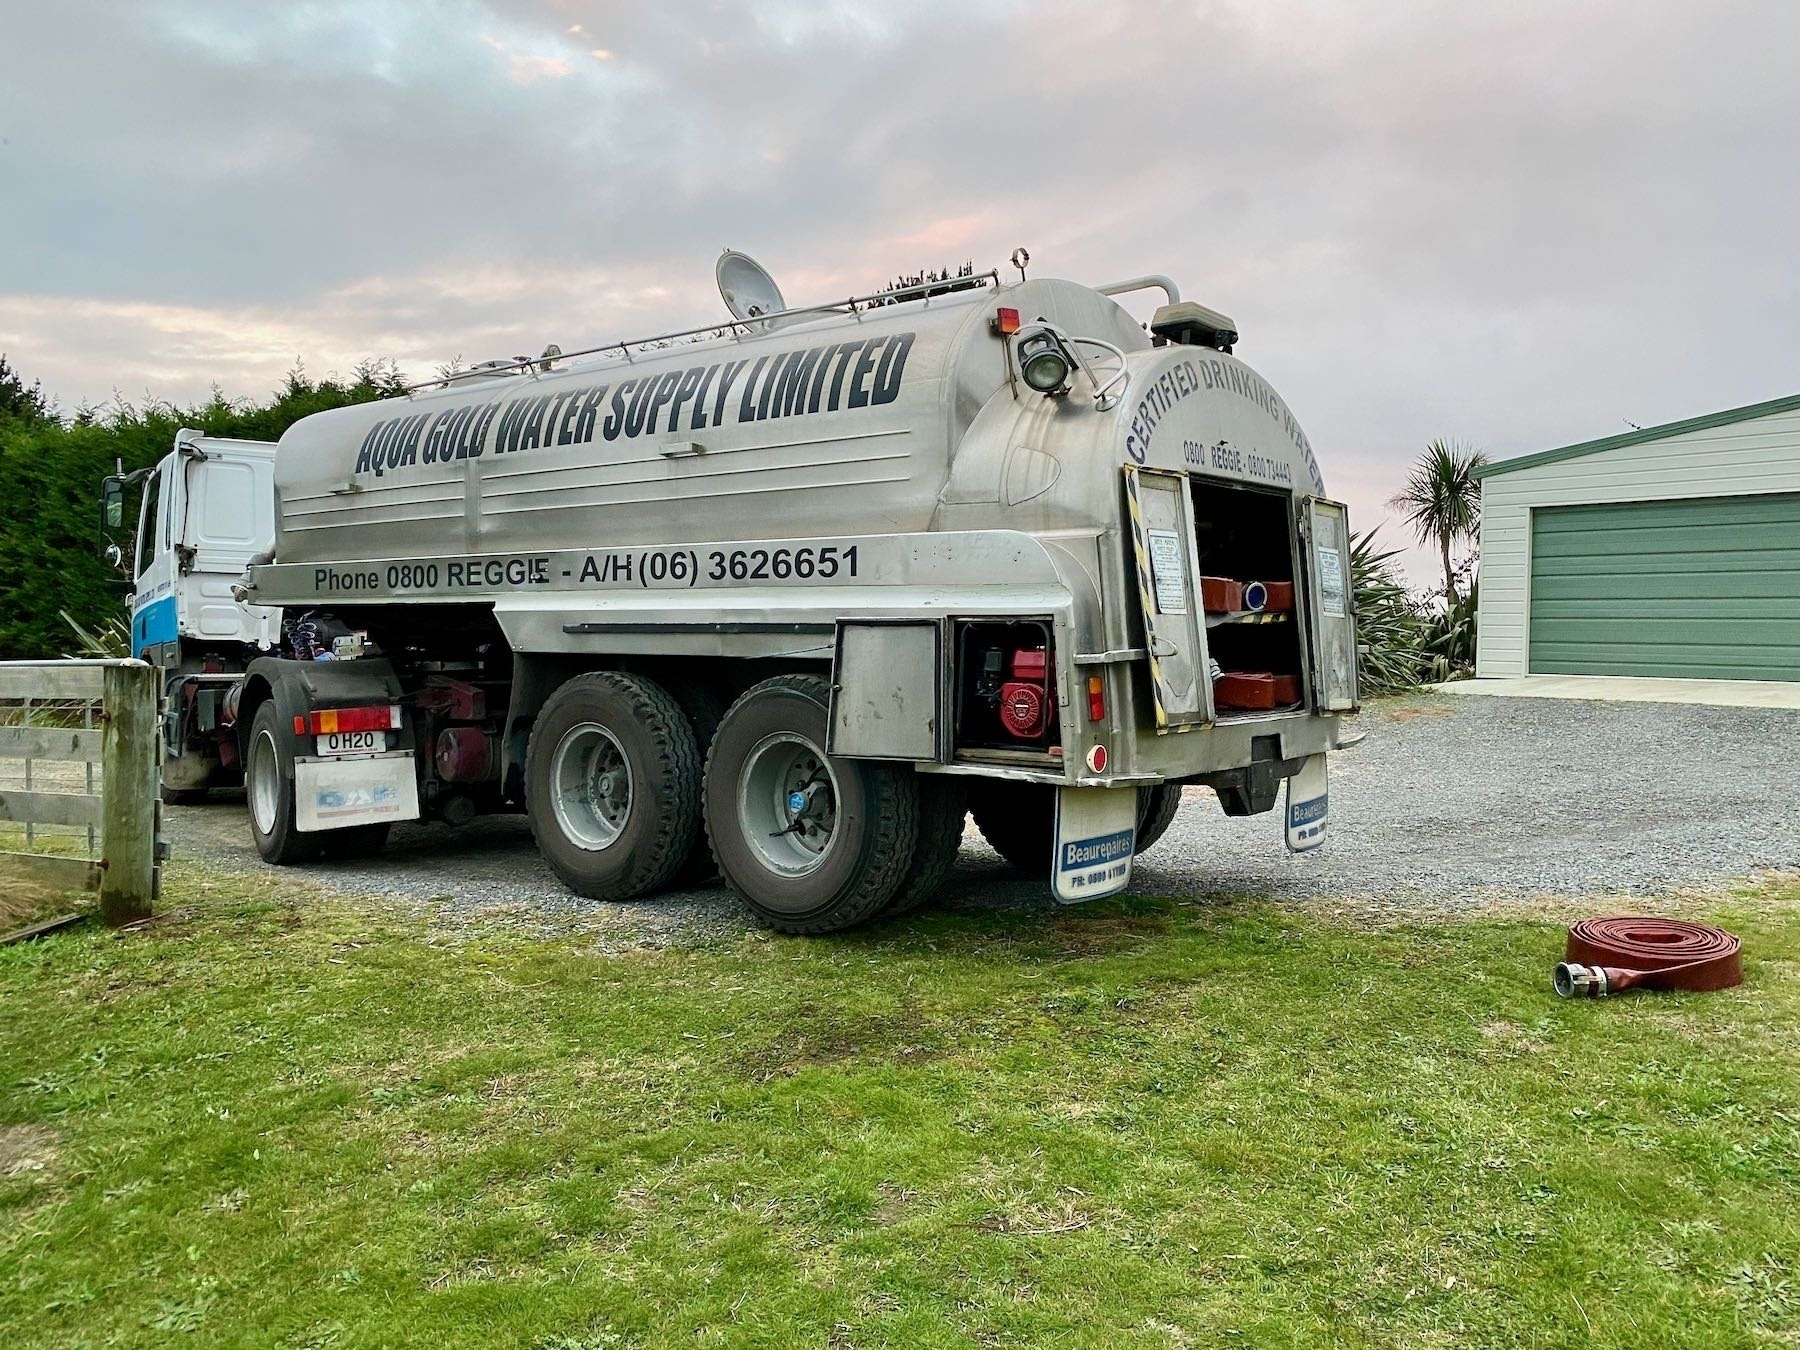 Water tanker at the gate.